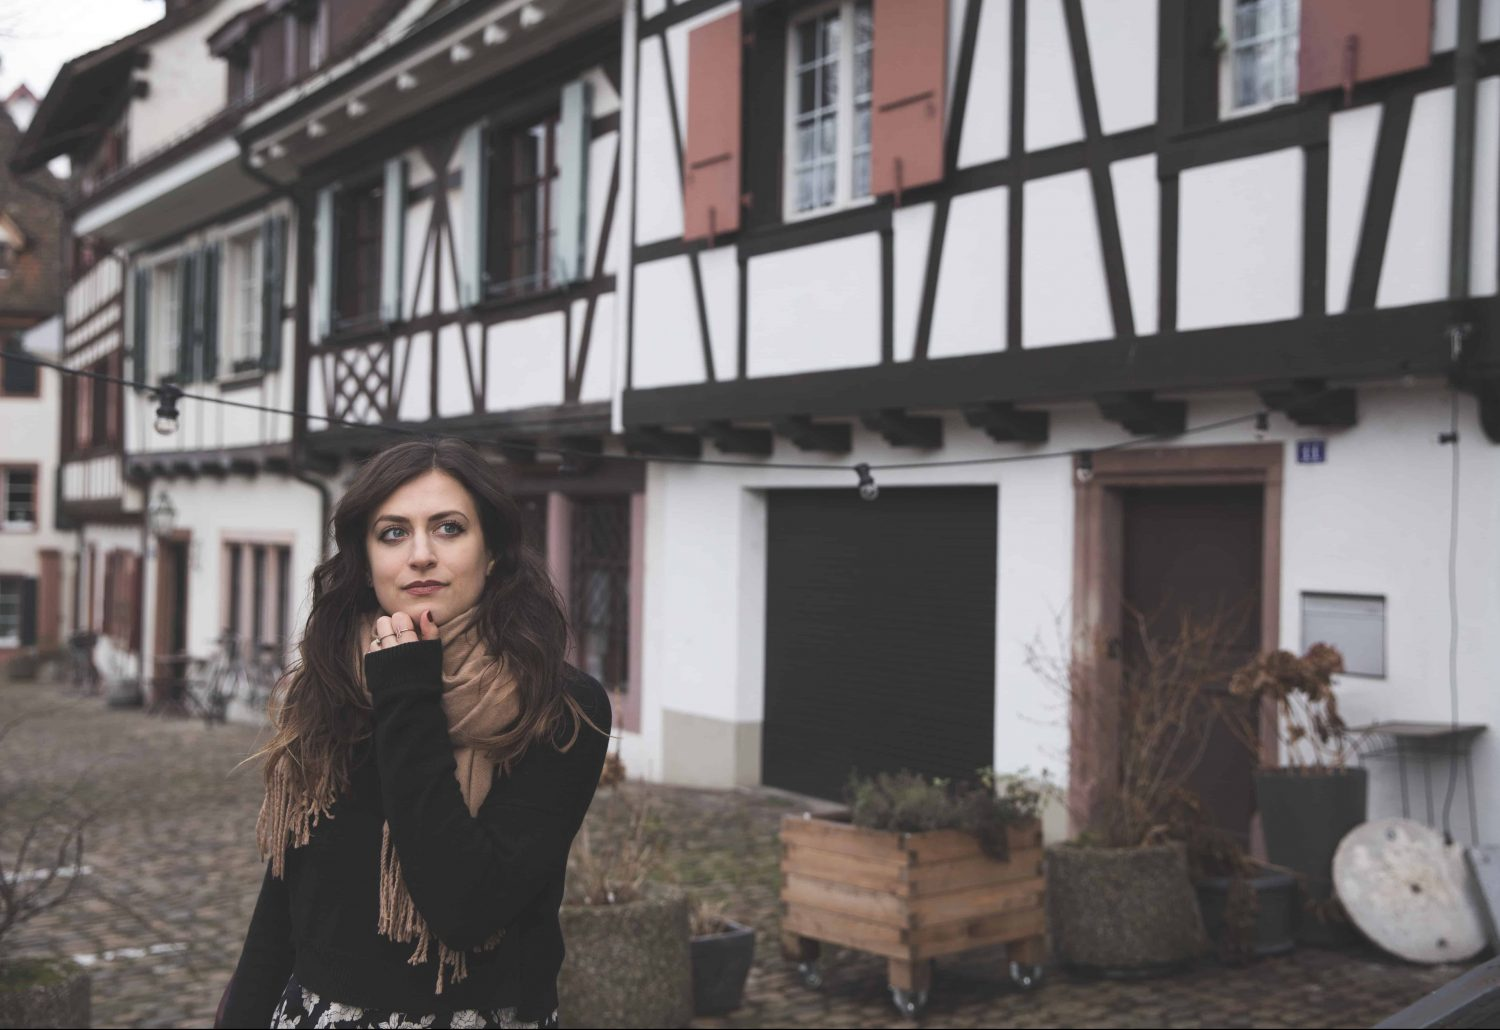 Girl staring into the distance in Basel, Switzerland in front of white and brown half-timbered houses